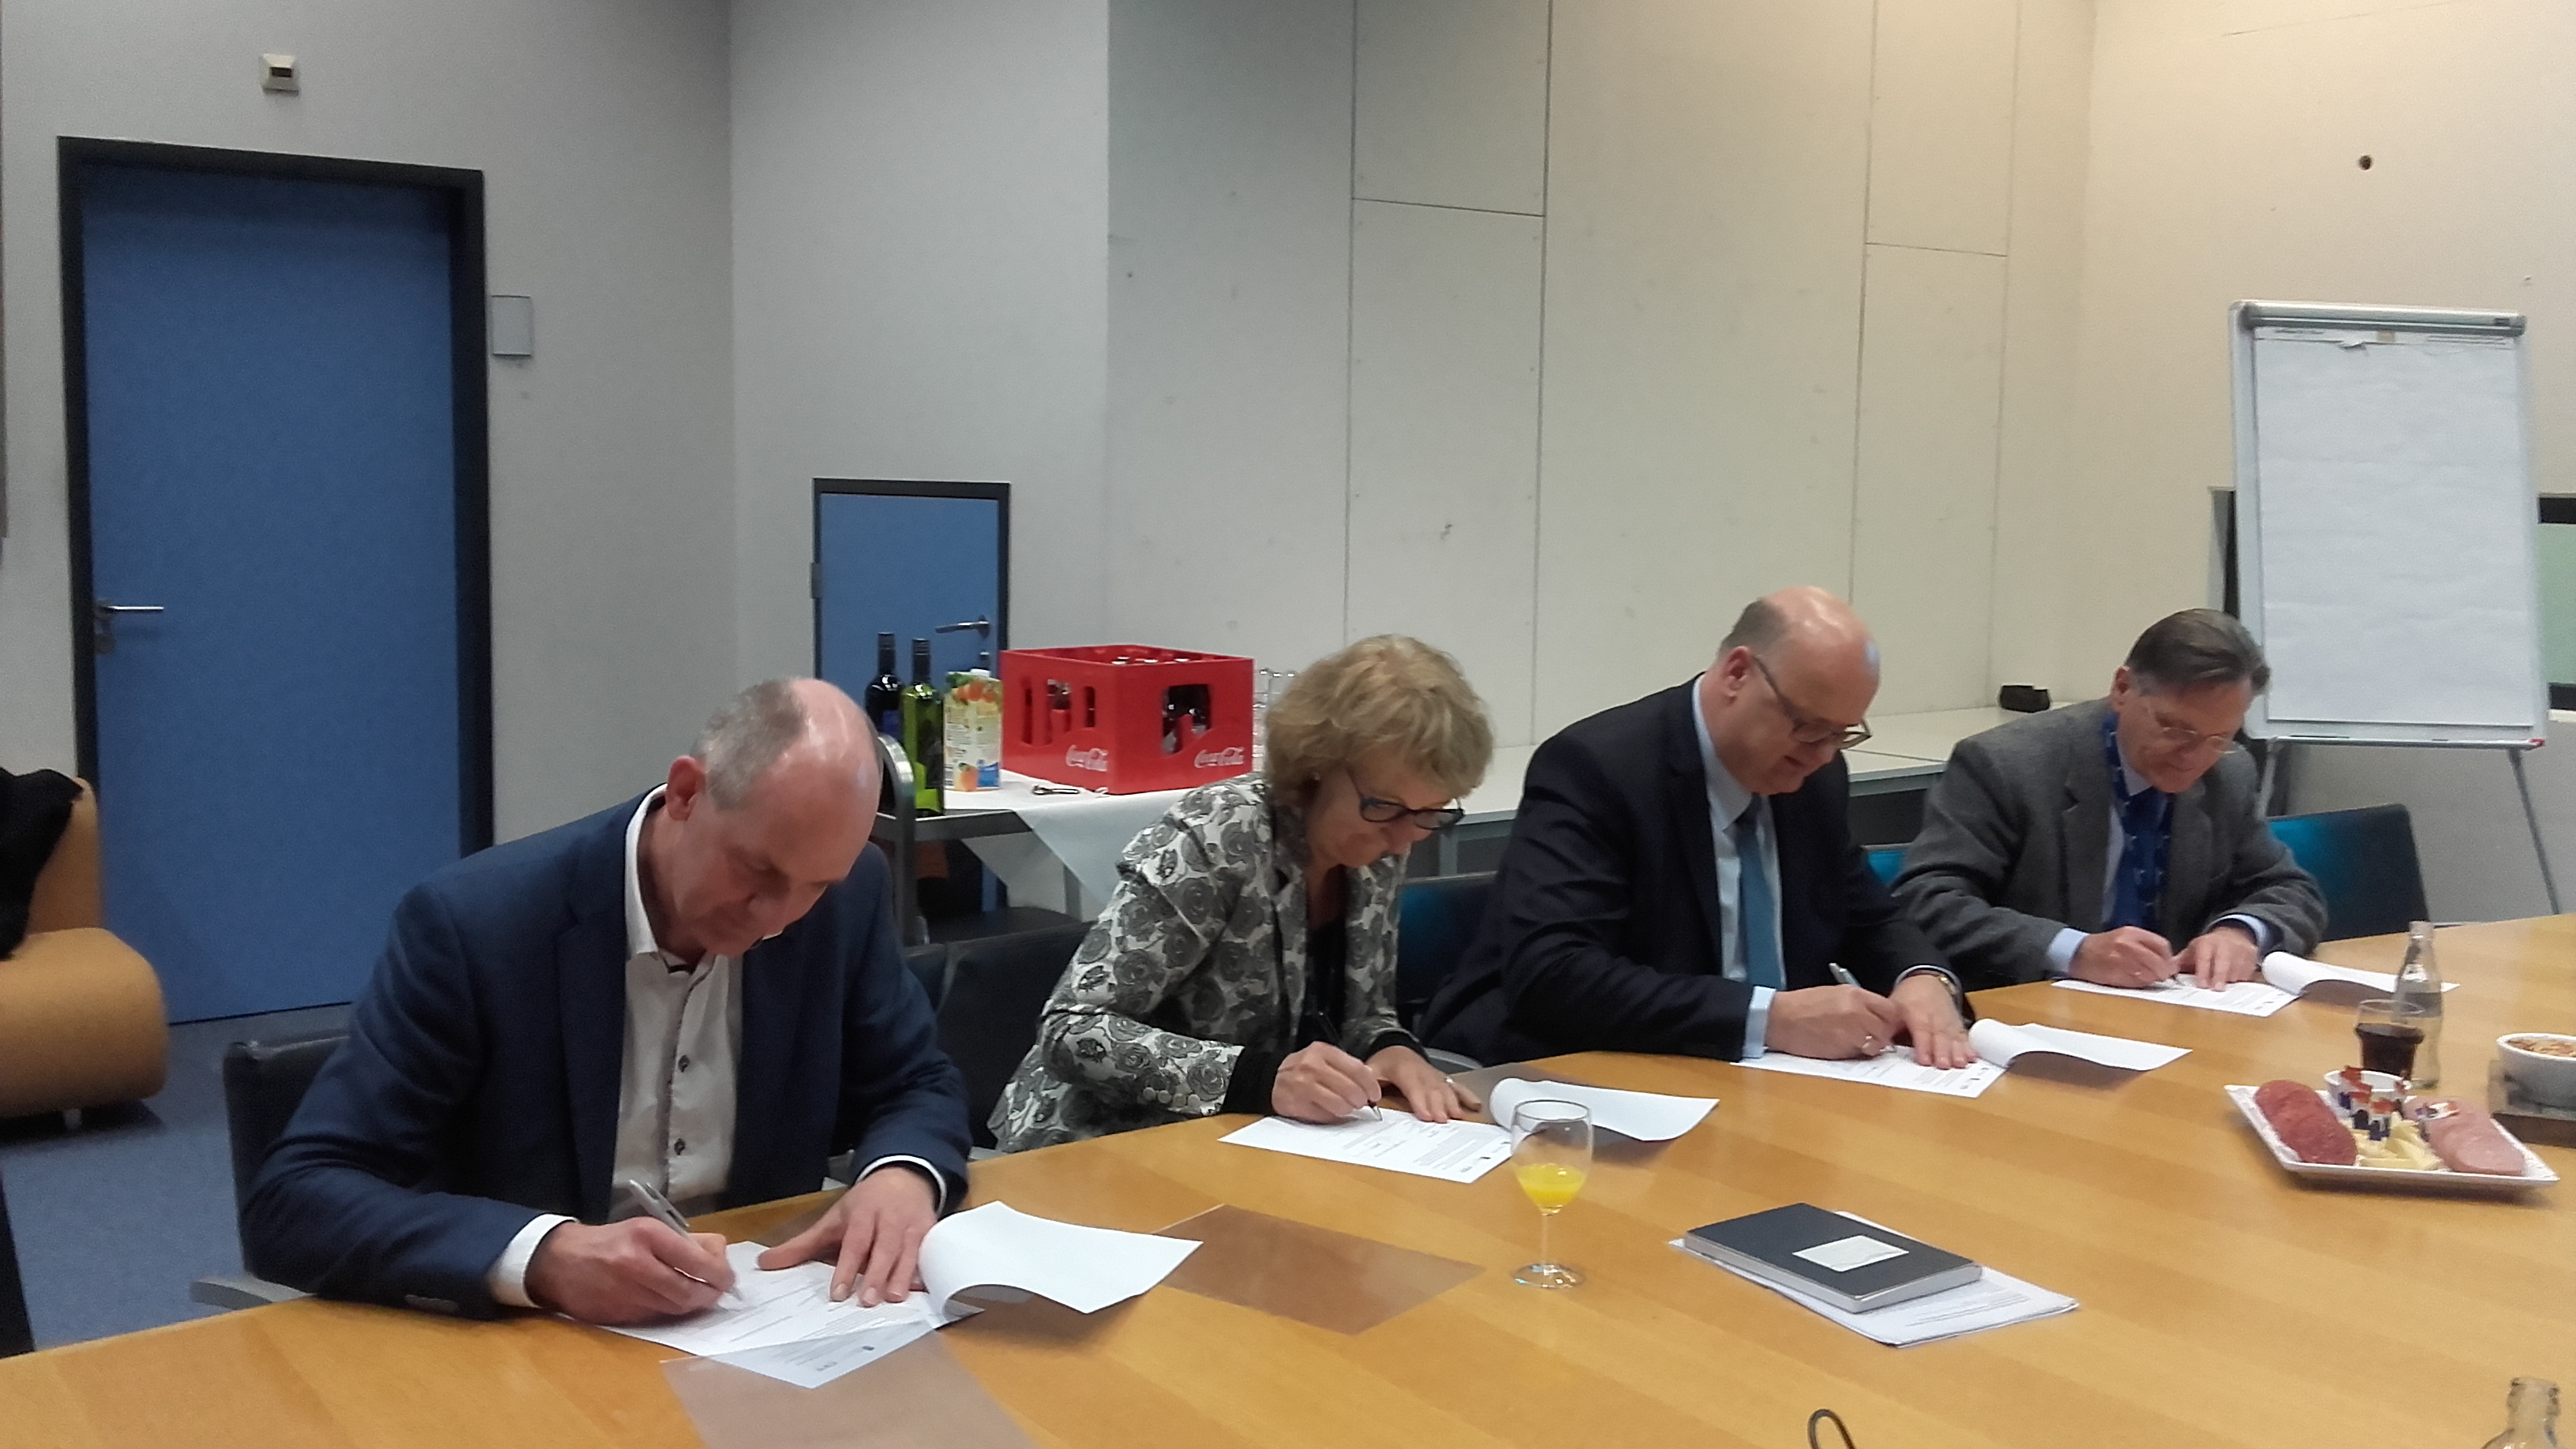 The signing establishes the foundation for a multi-annual programme of knowledge development aimed at improving the quality of water in the Netherlands.